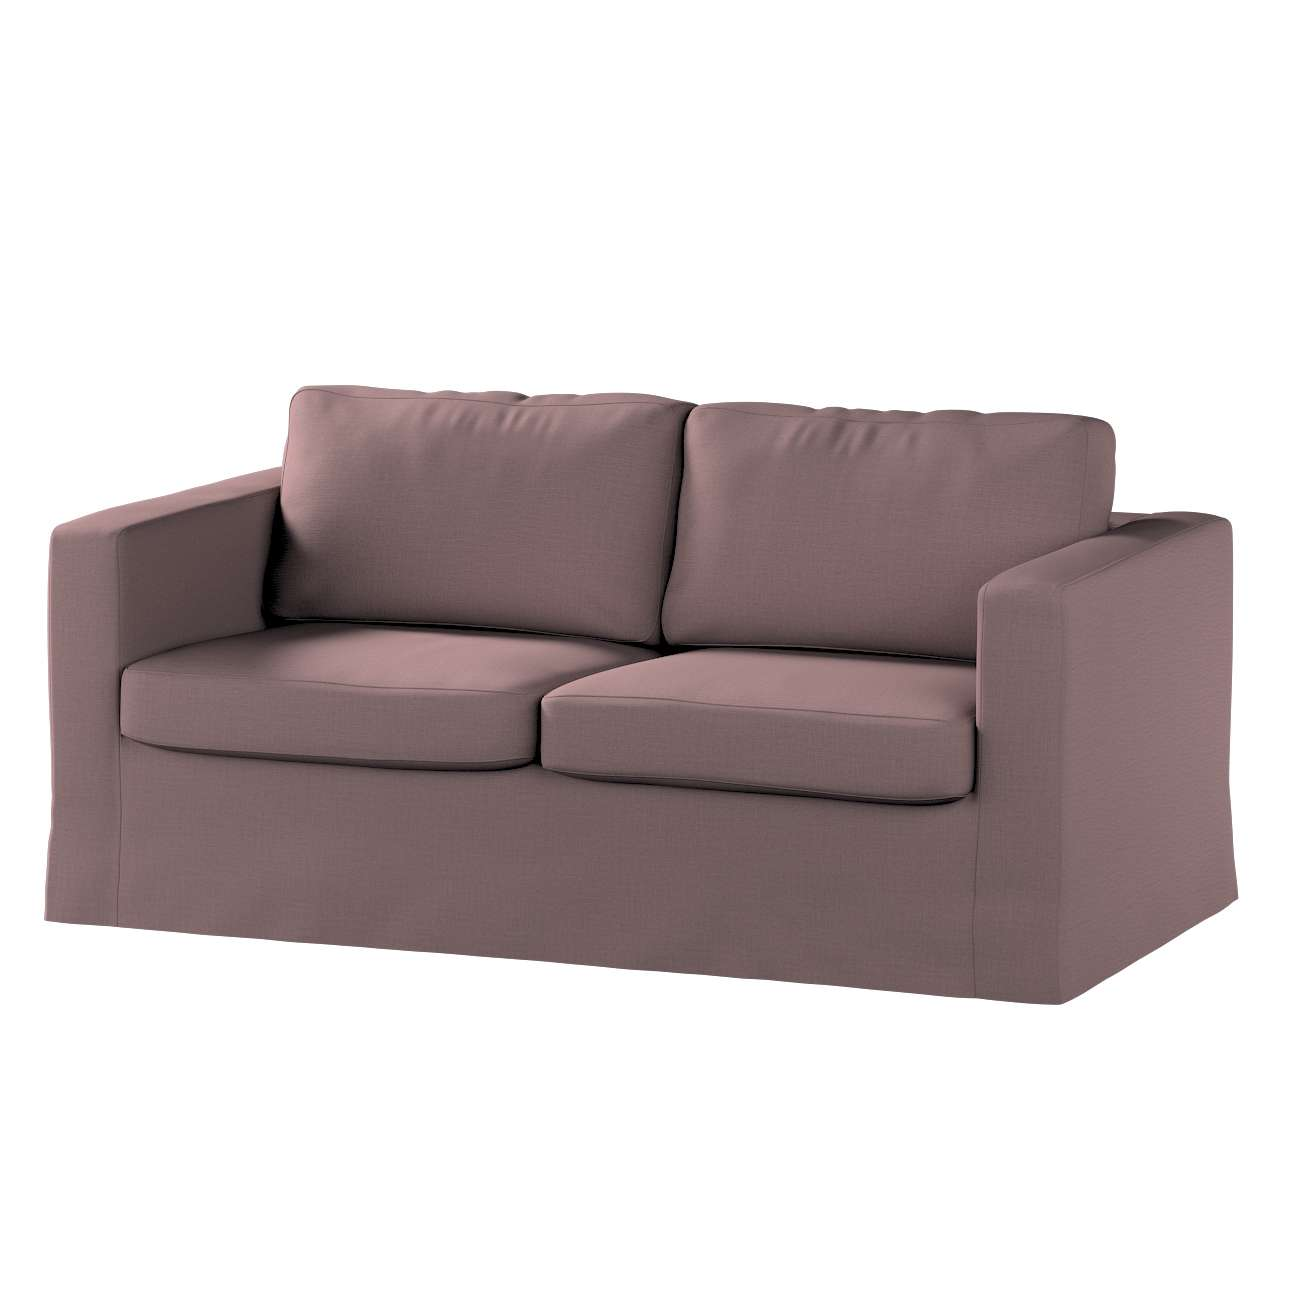 Floor length Karlstad 2-seater sofa cover in collection Living, fabric: 106-63